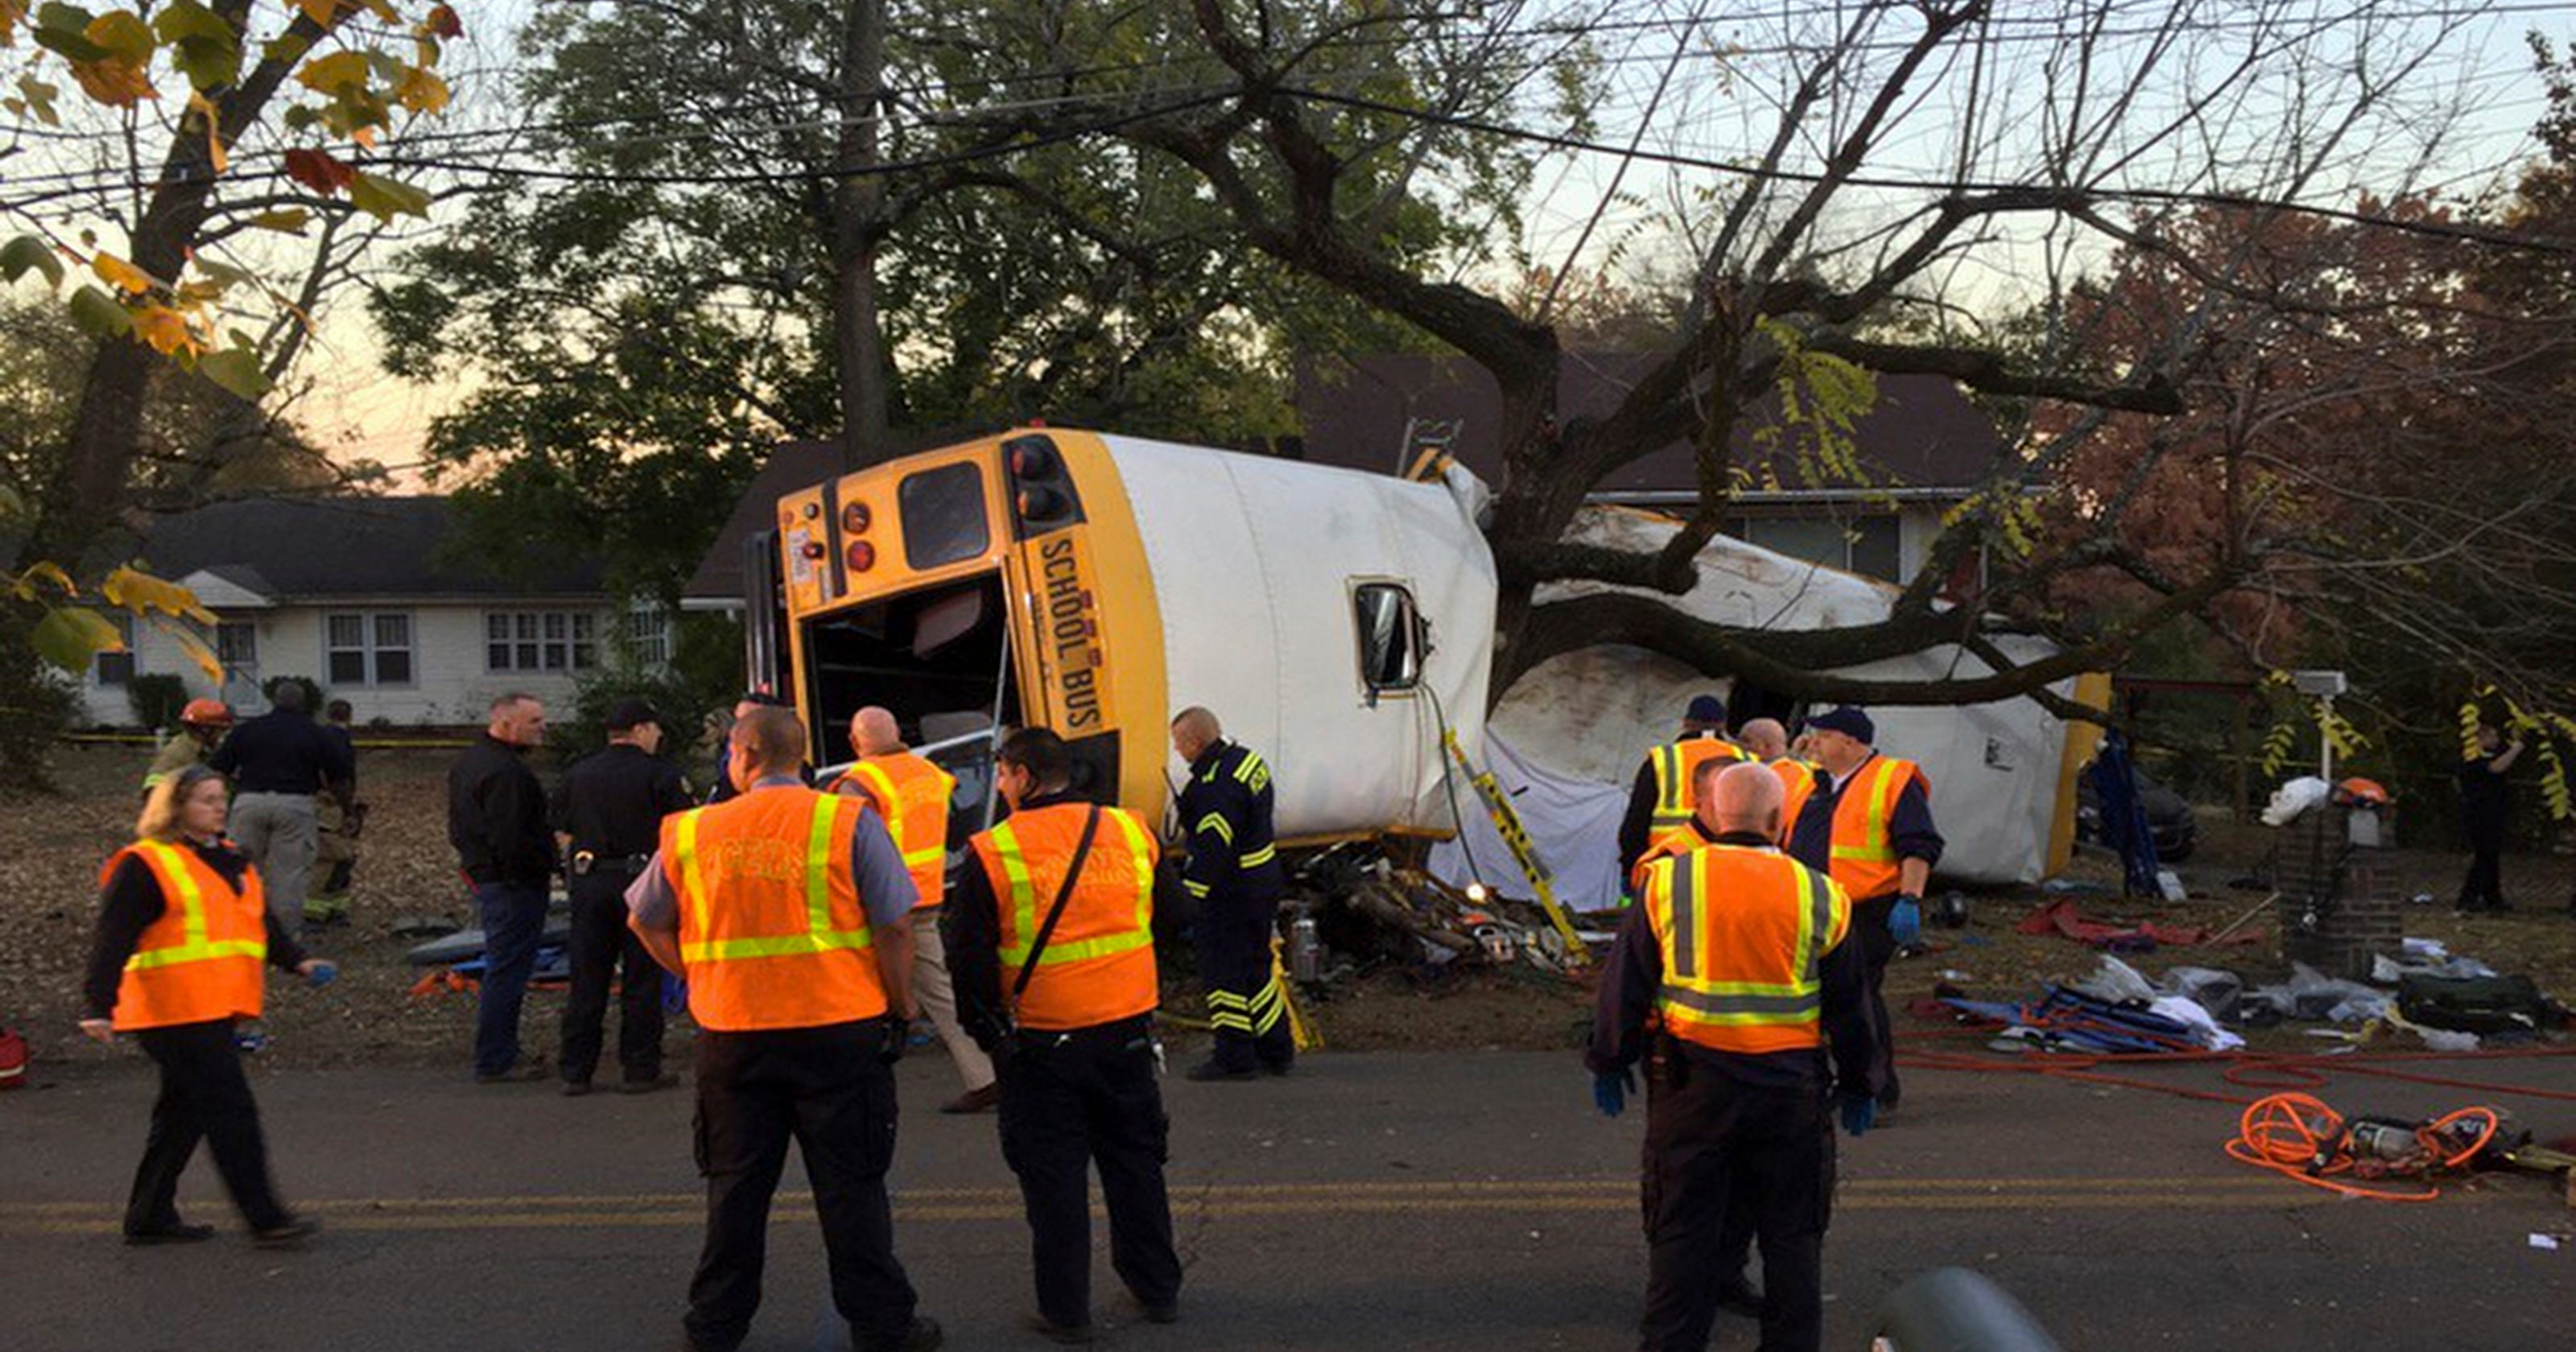 Bus company has had 36 injury crashes in Tennessee since 2014